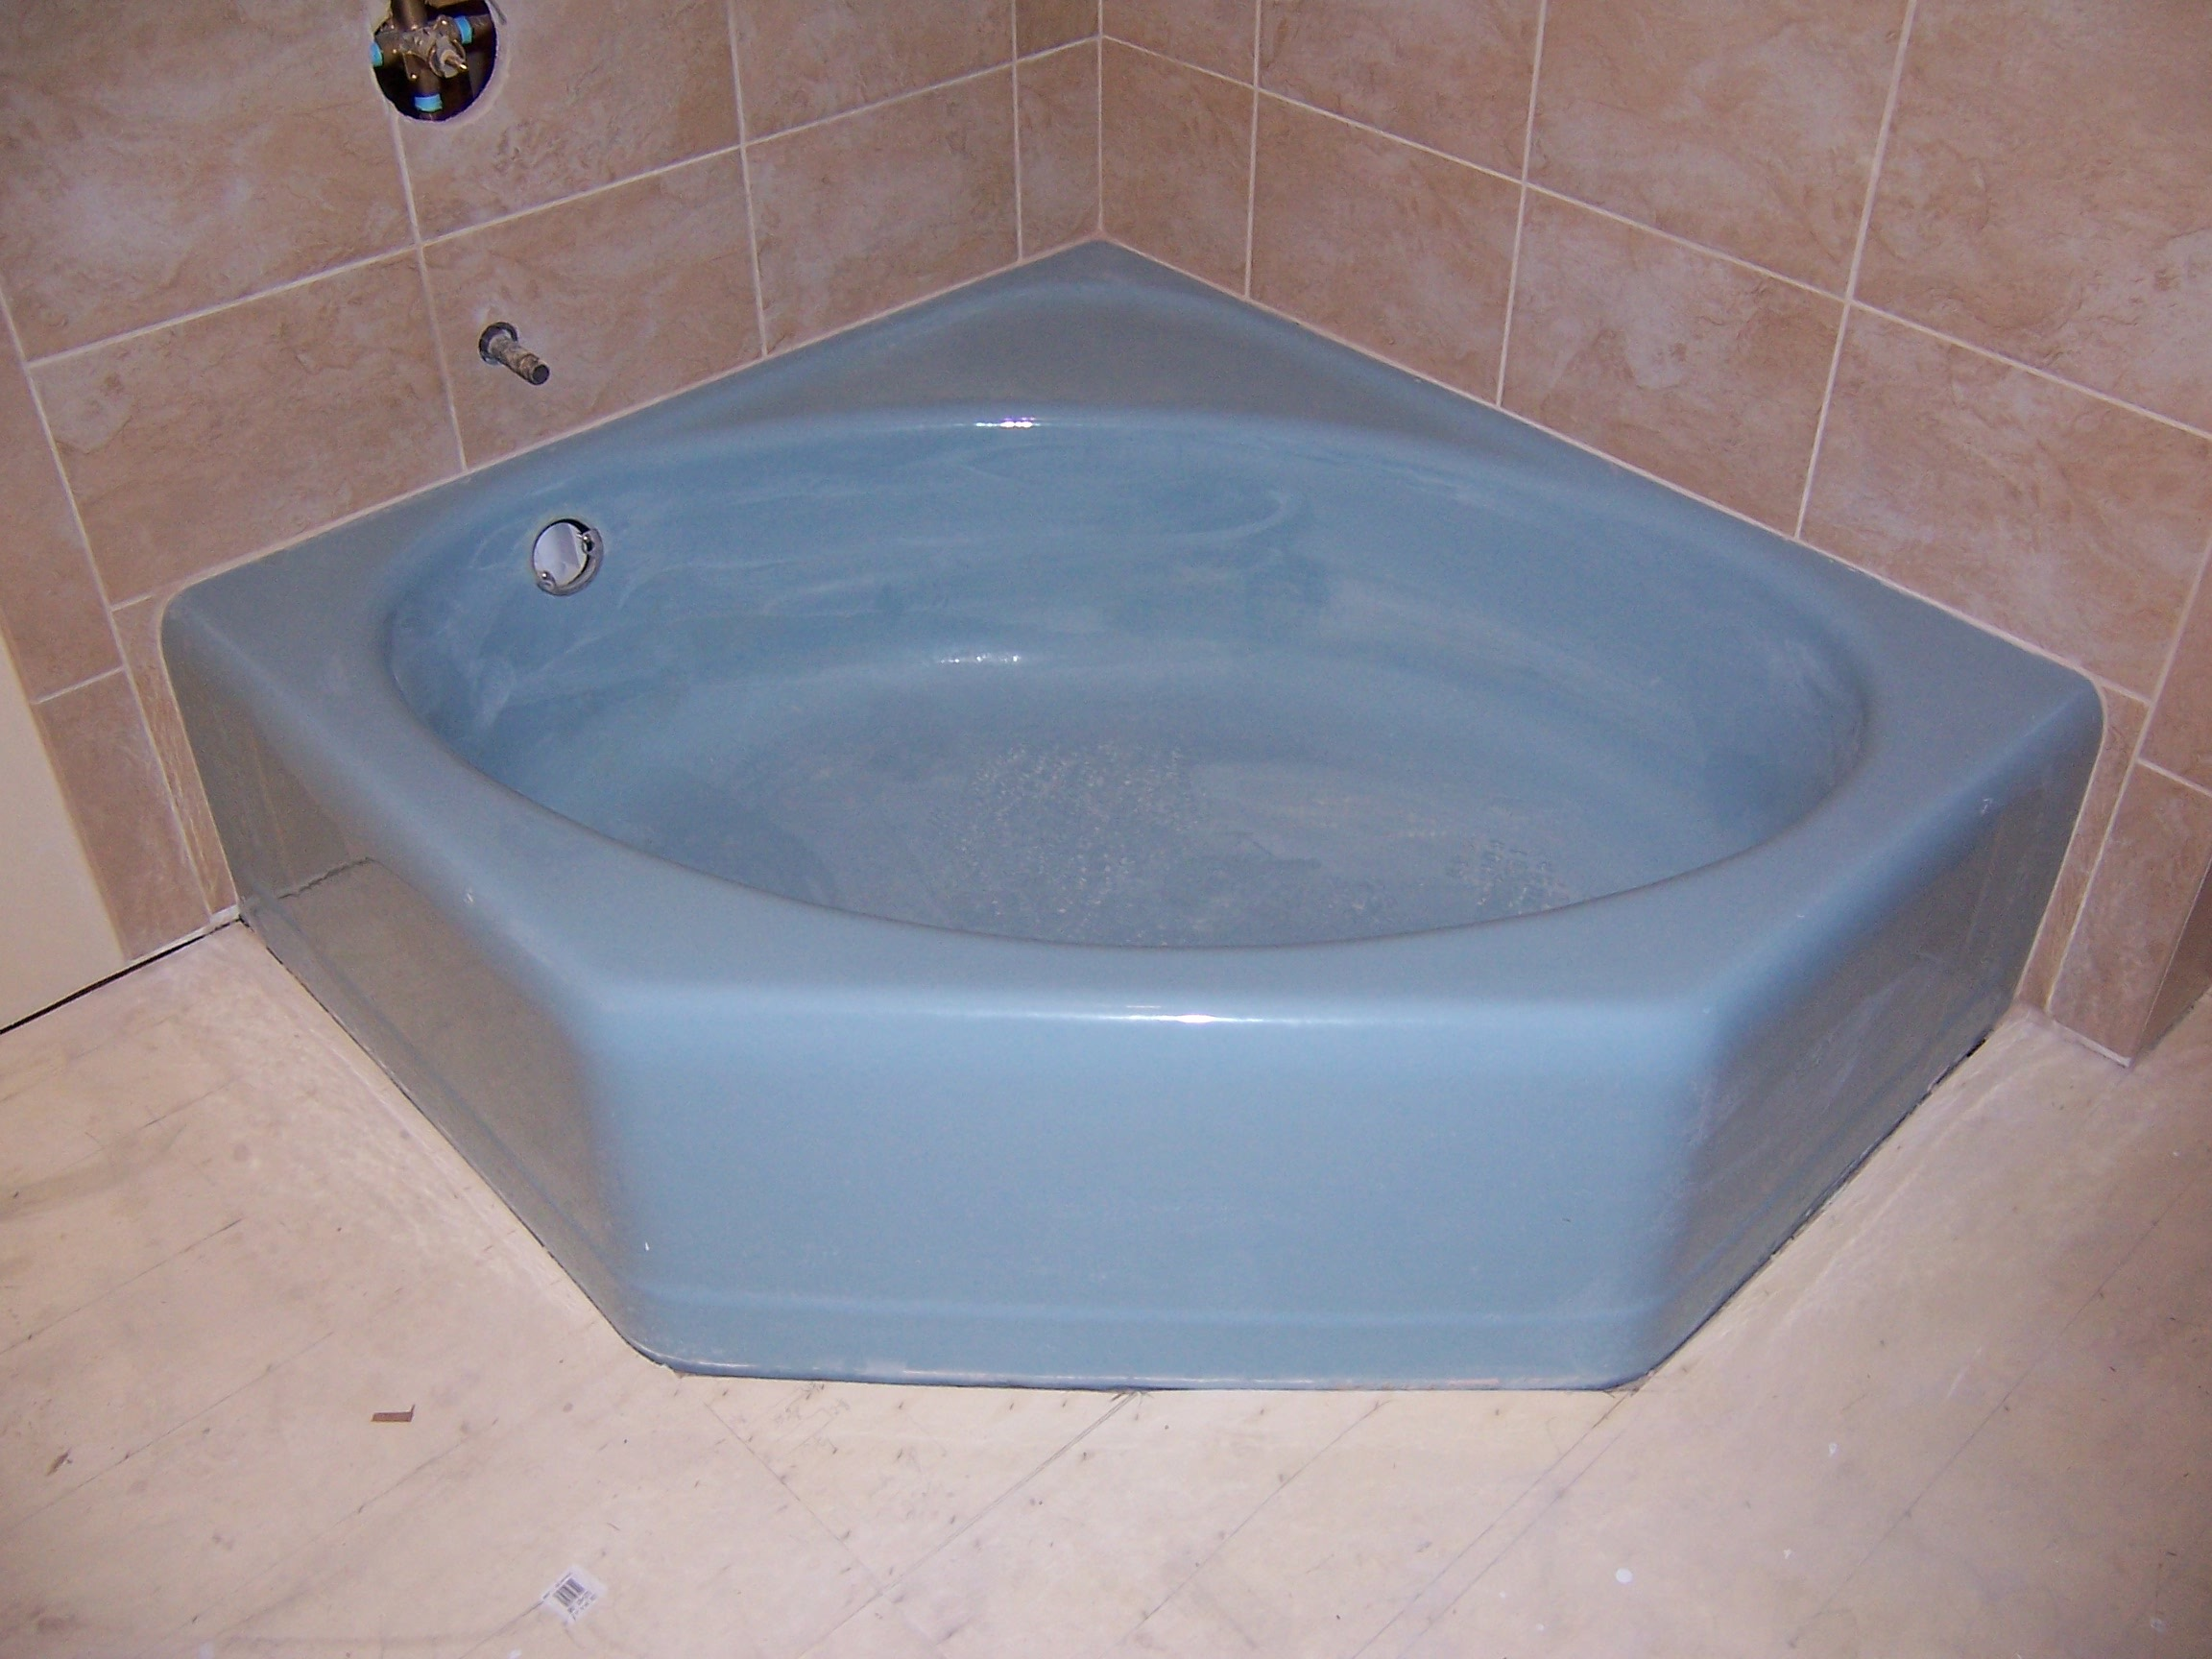 Rare tub from 1960s, original